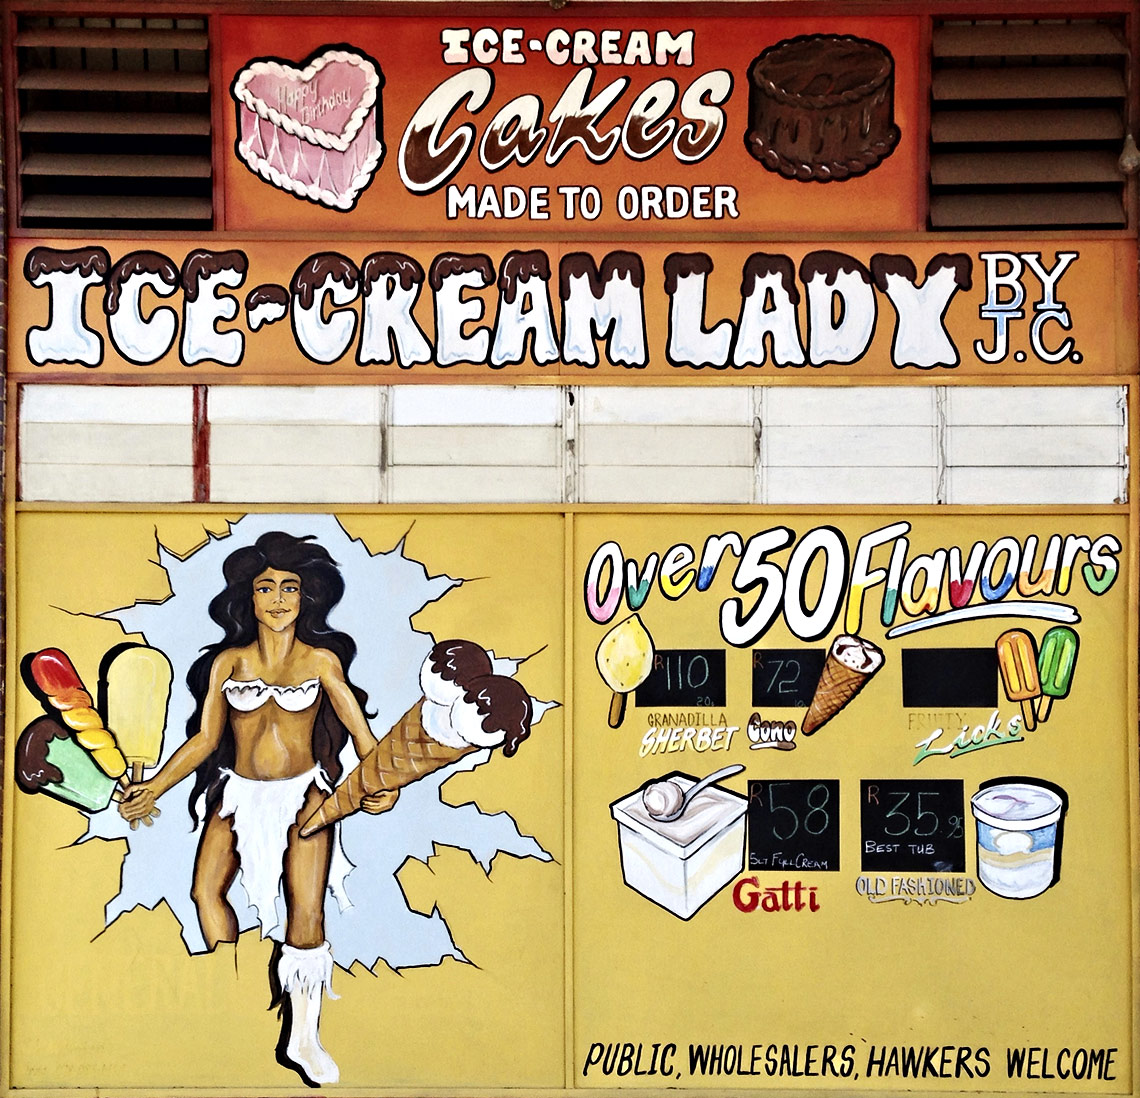 19-Ice-cream-lady-final